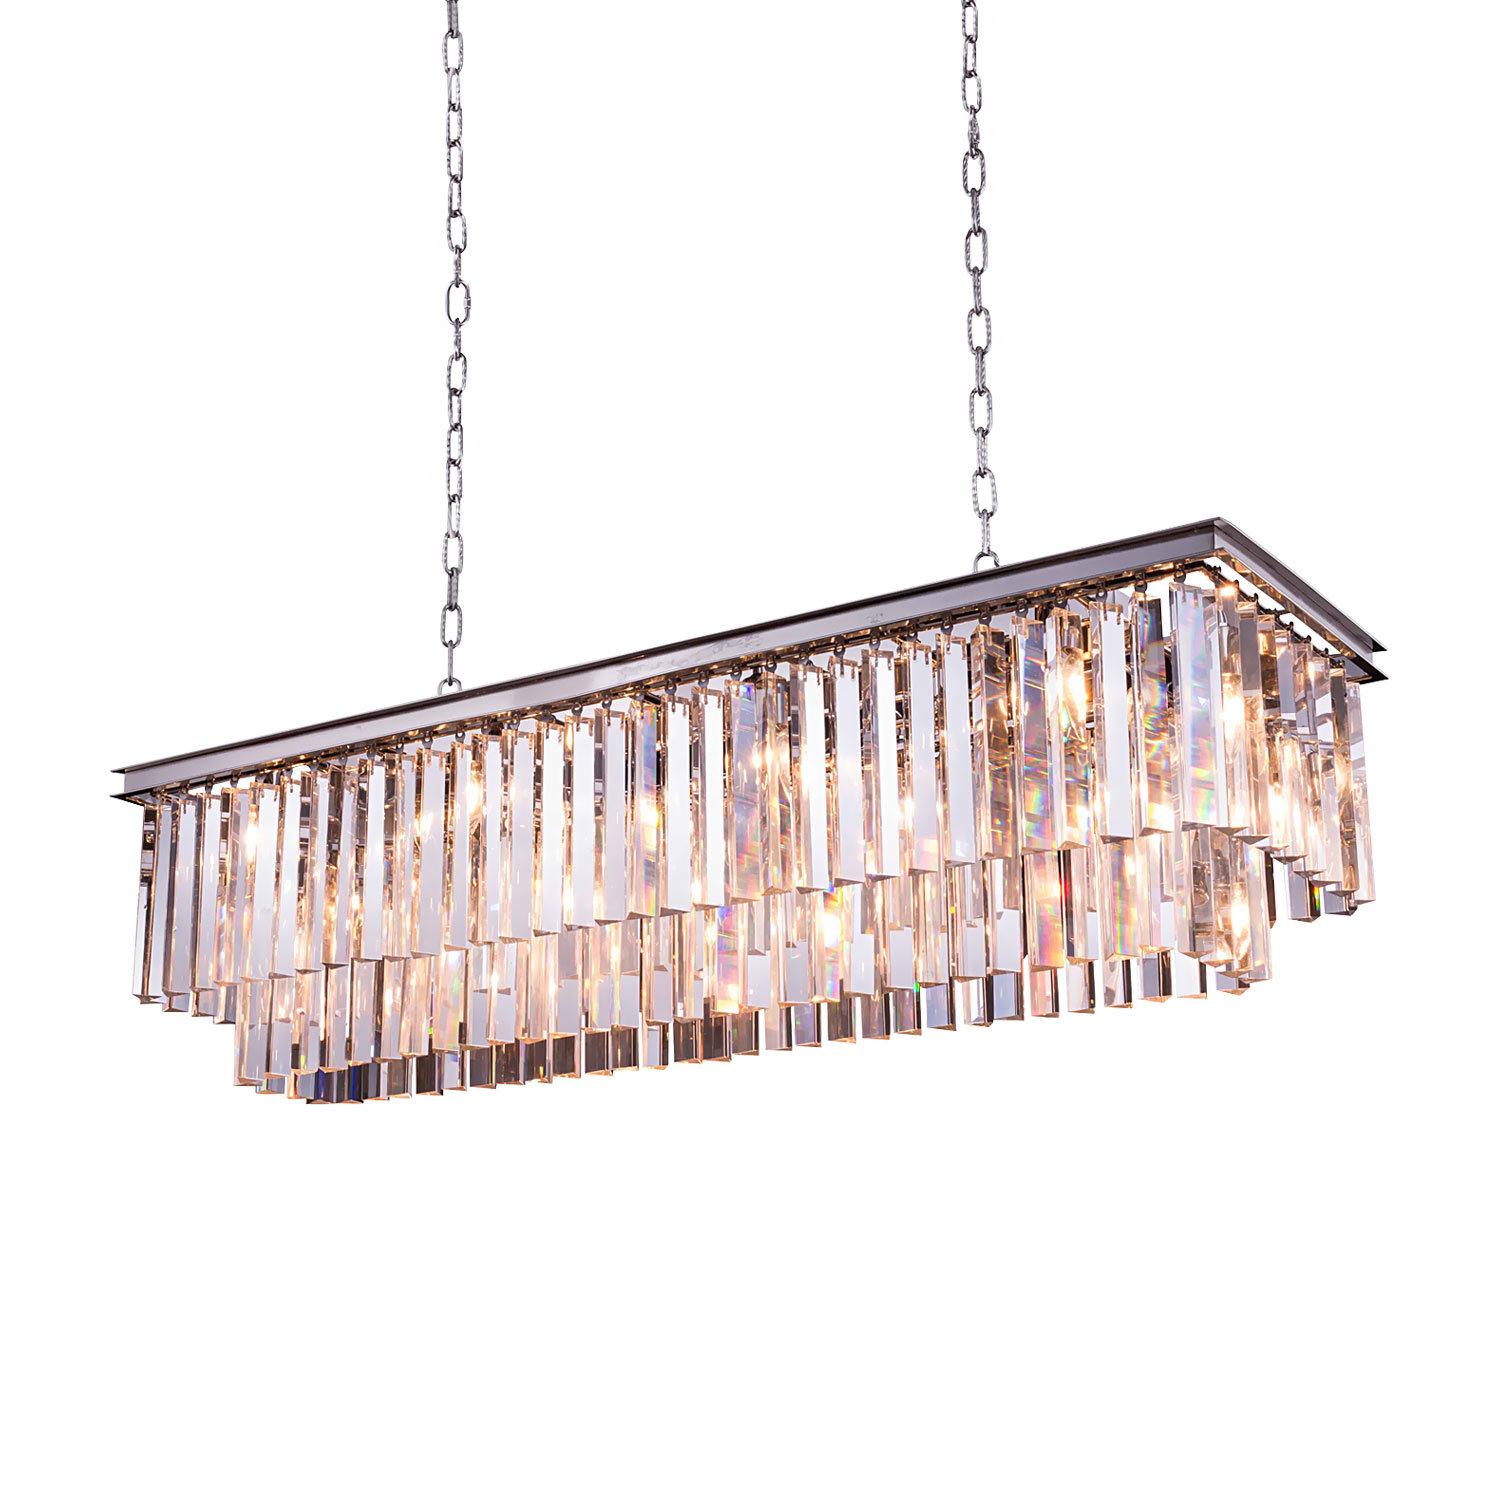 Restoration revolution odeon 12 light 50 glass fringe rectangular odeon 12 light 50 glass fringe rectangular chandelier arubaitofo Choice Image